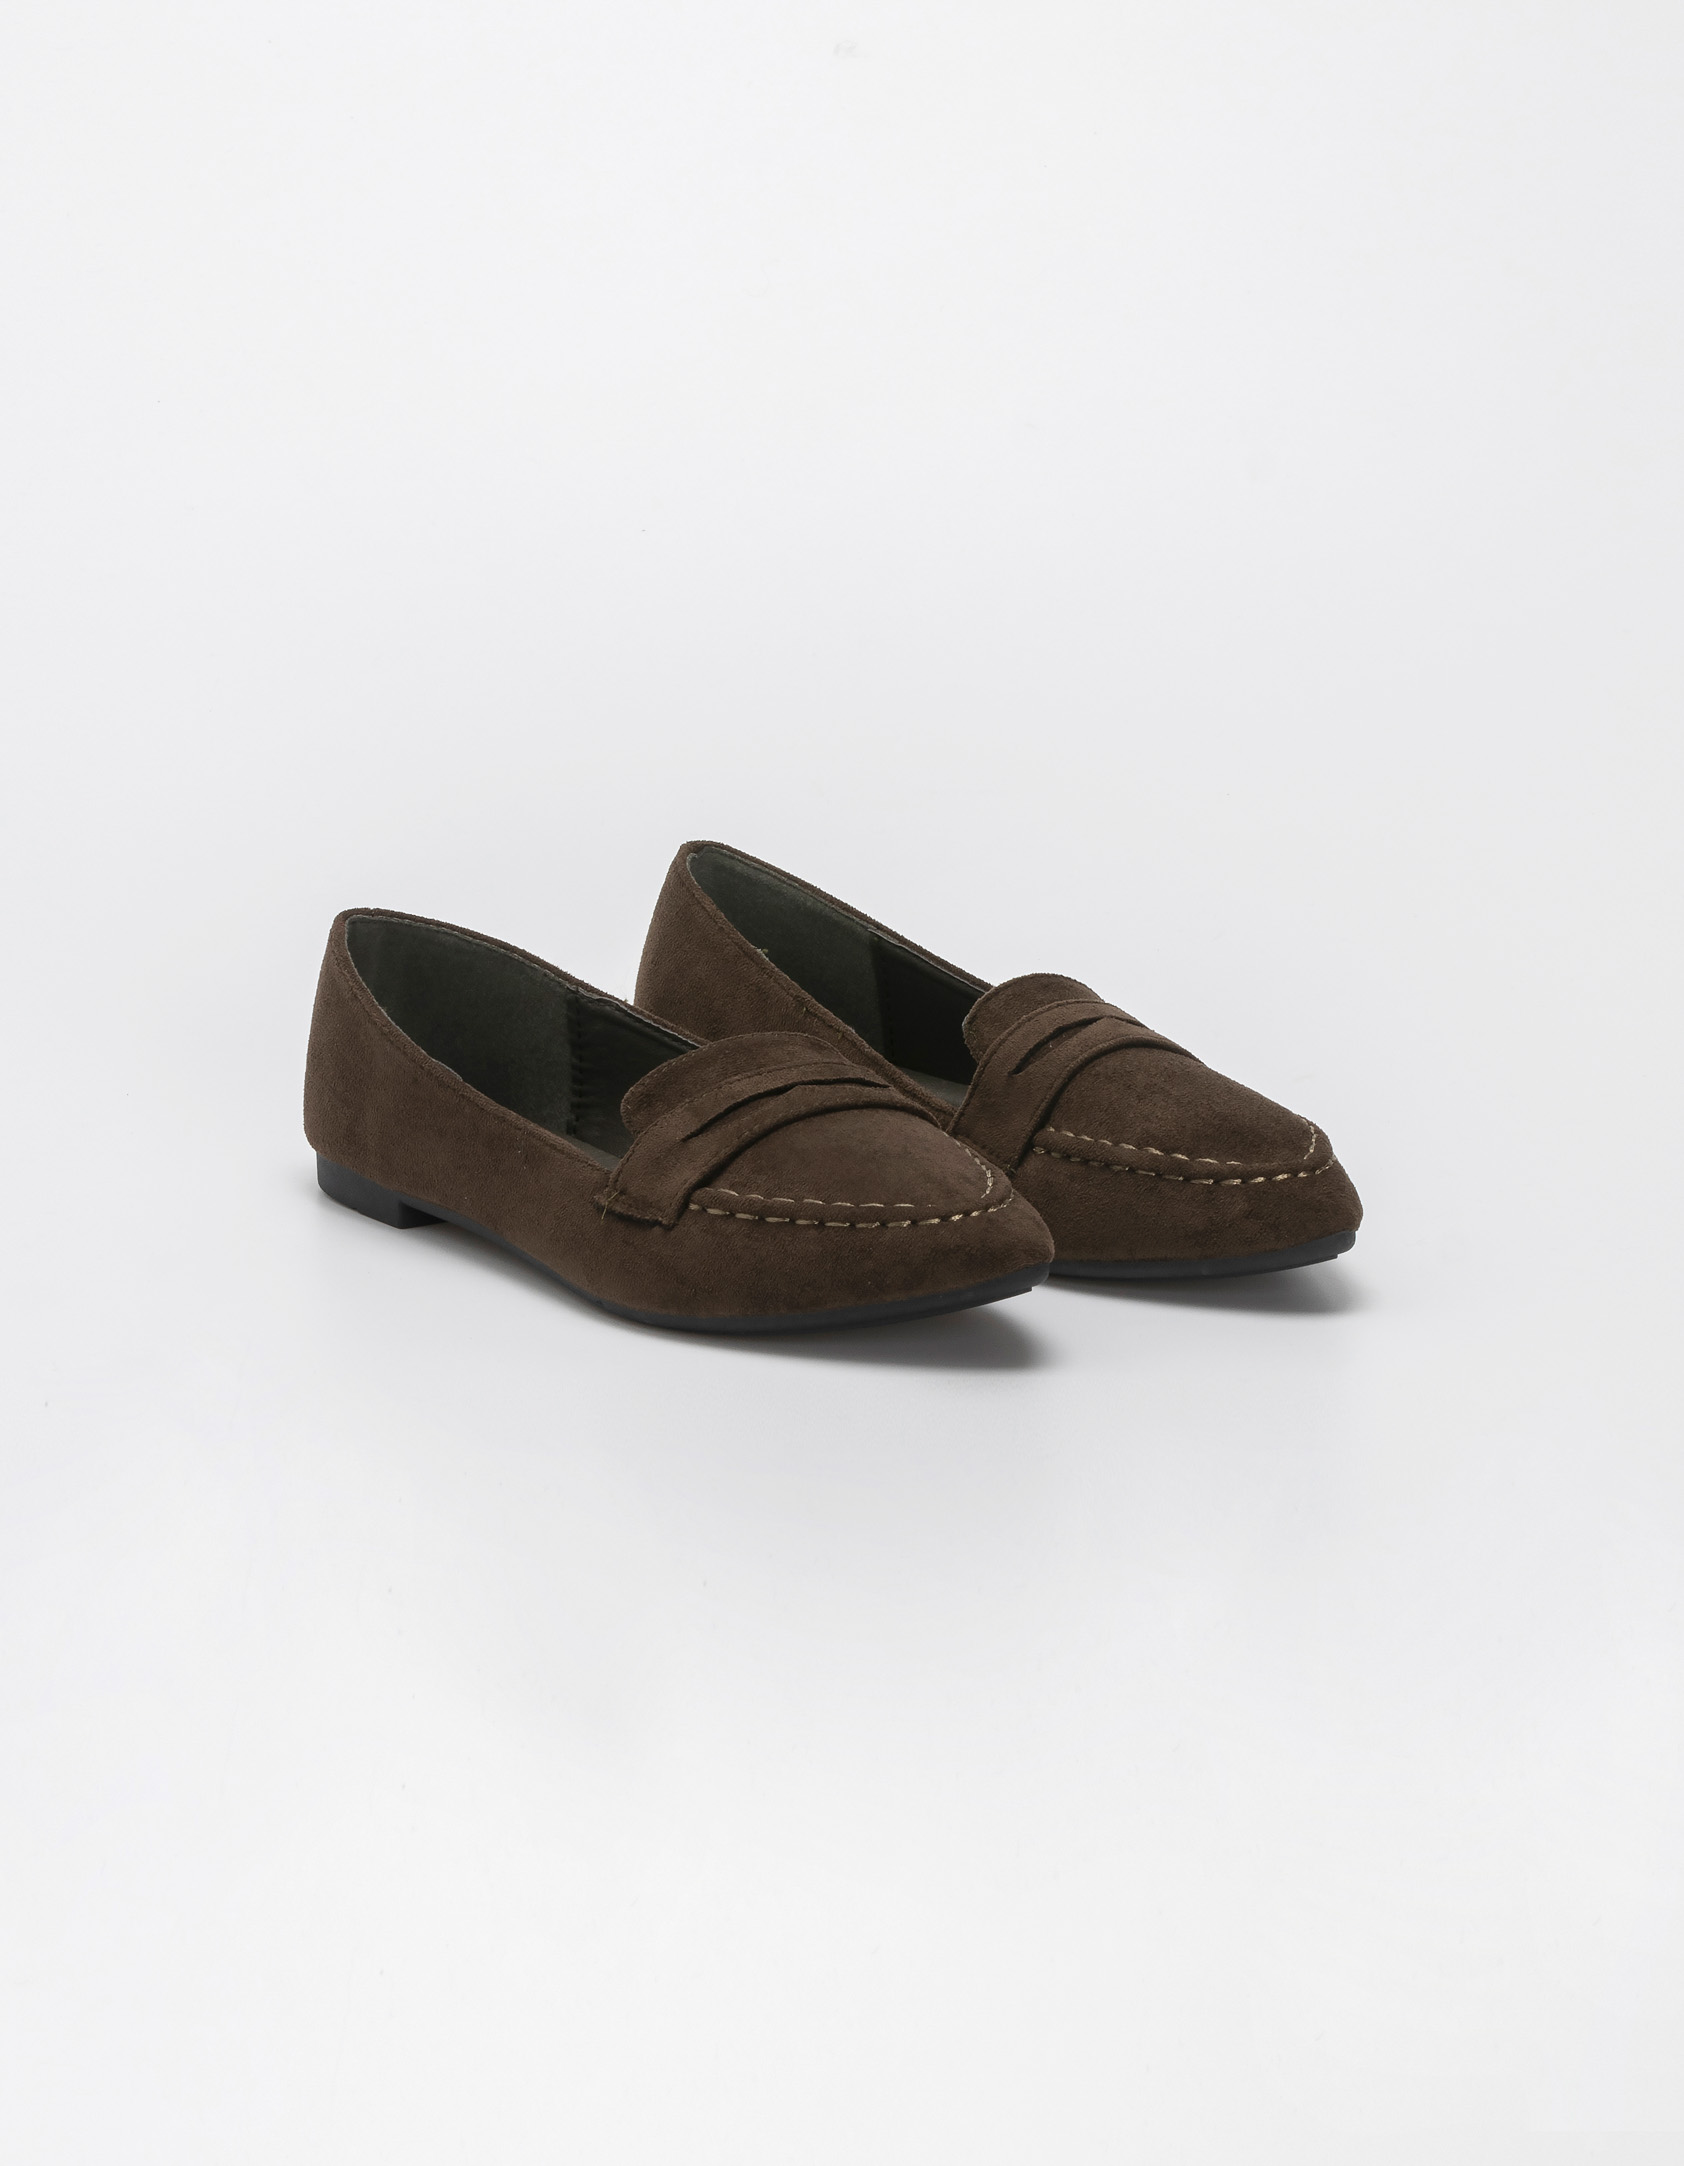 Suede loafers - Λαδί